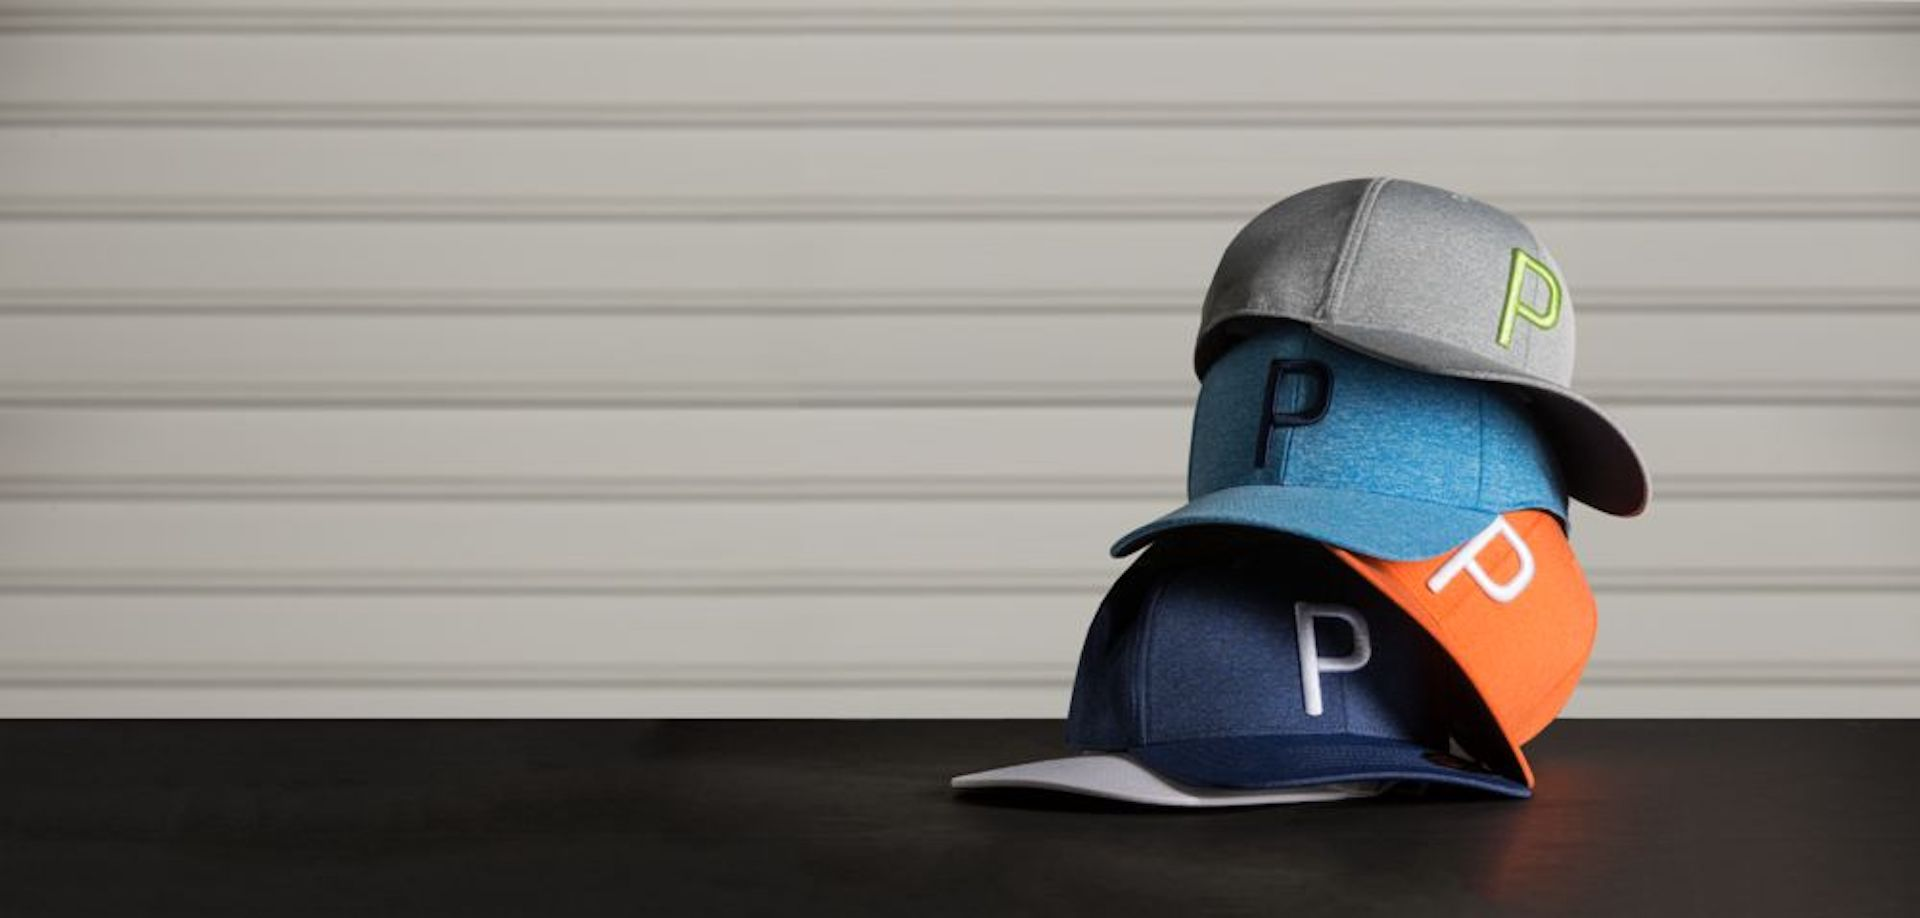 Introducing the P snapback cap from Puma